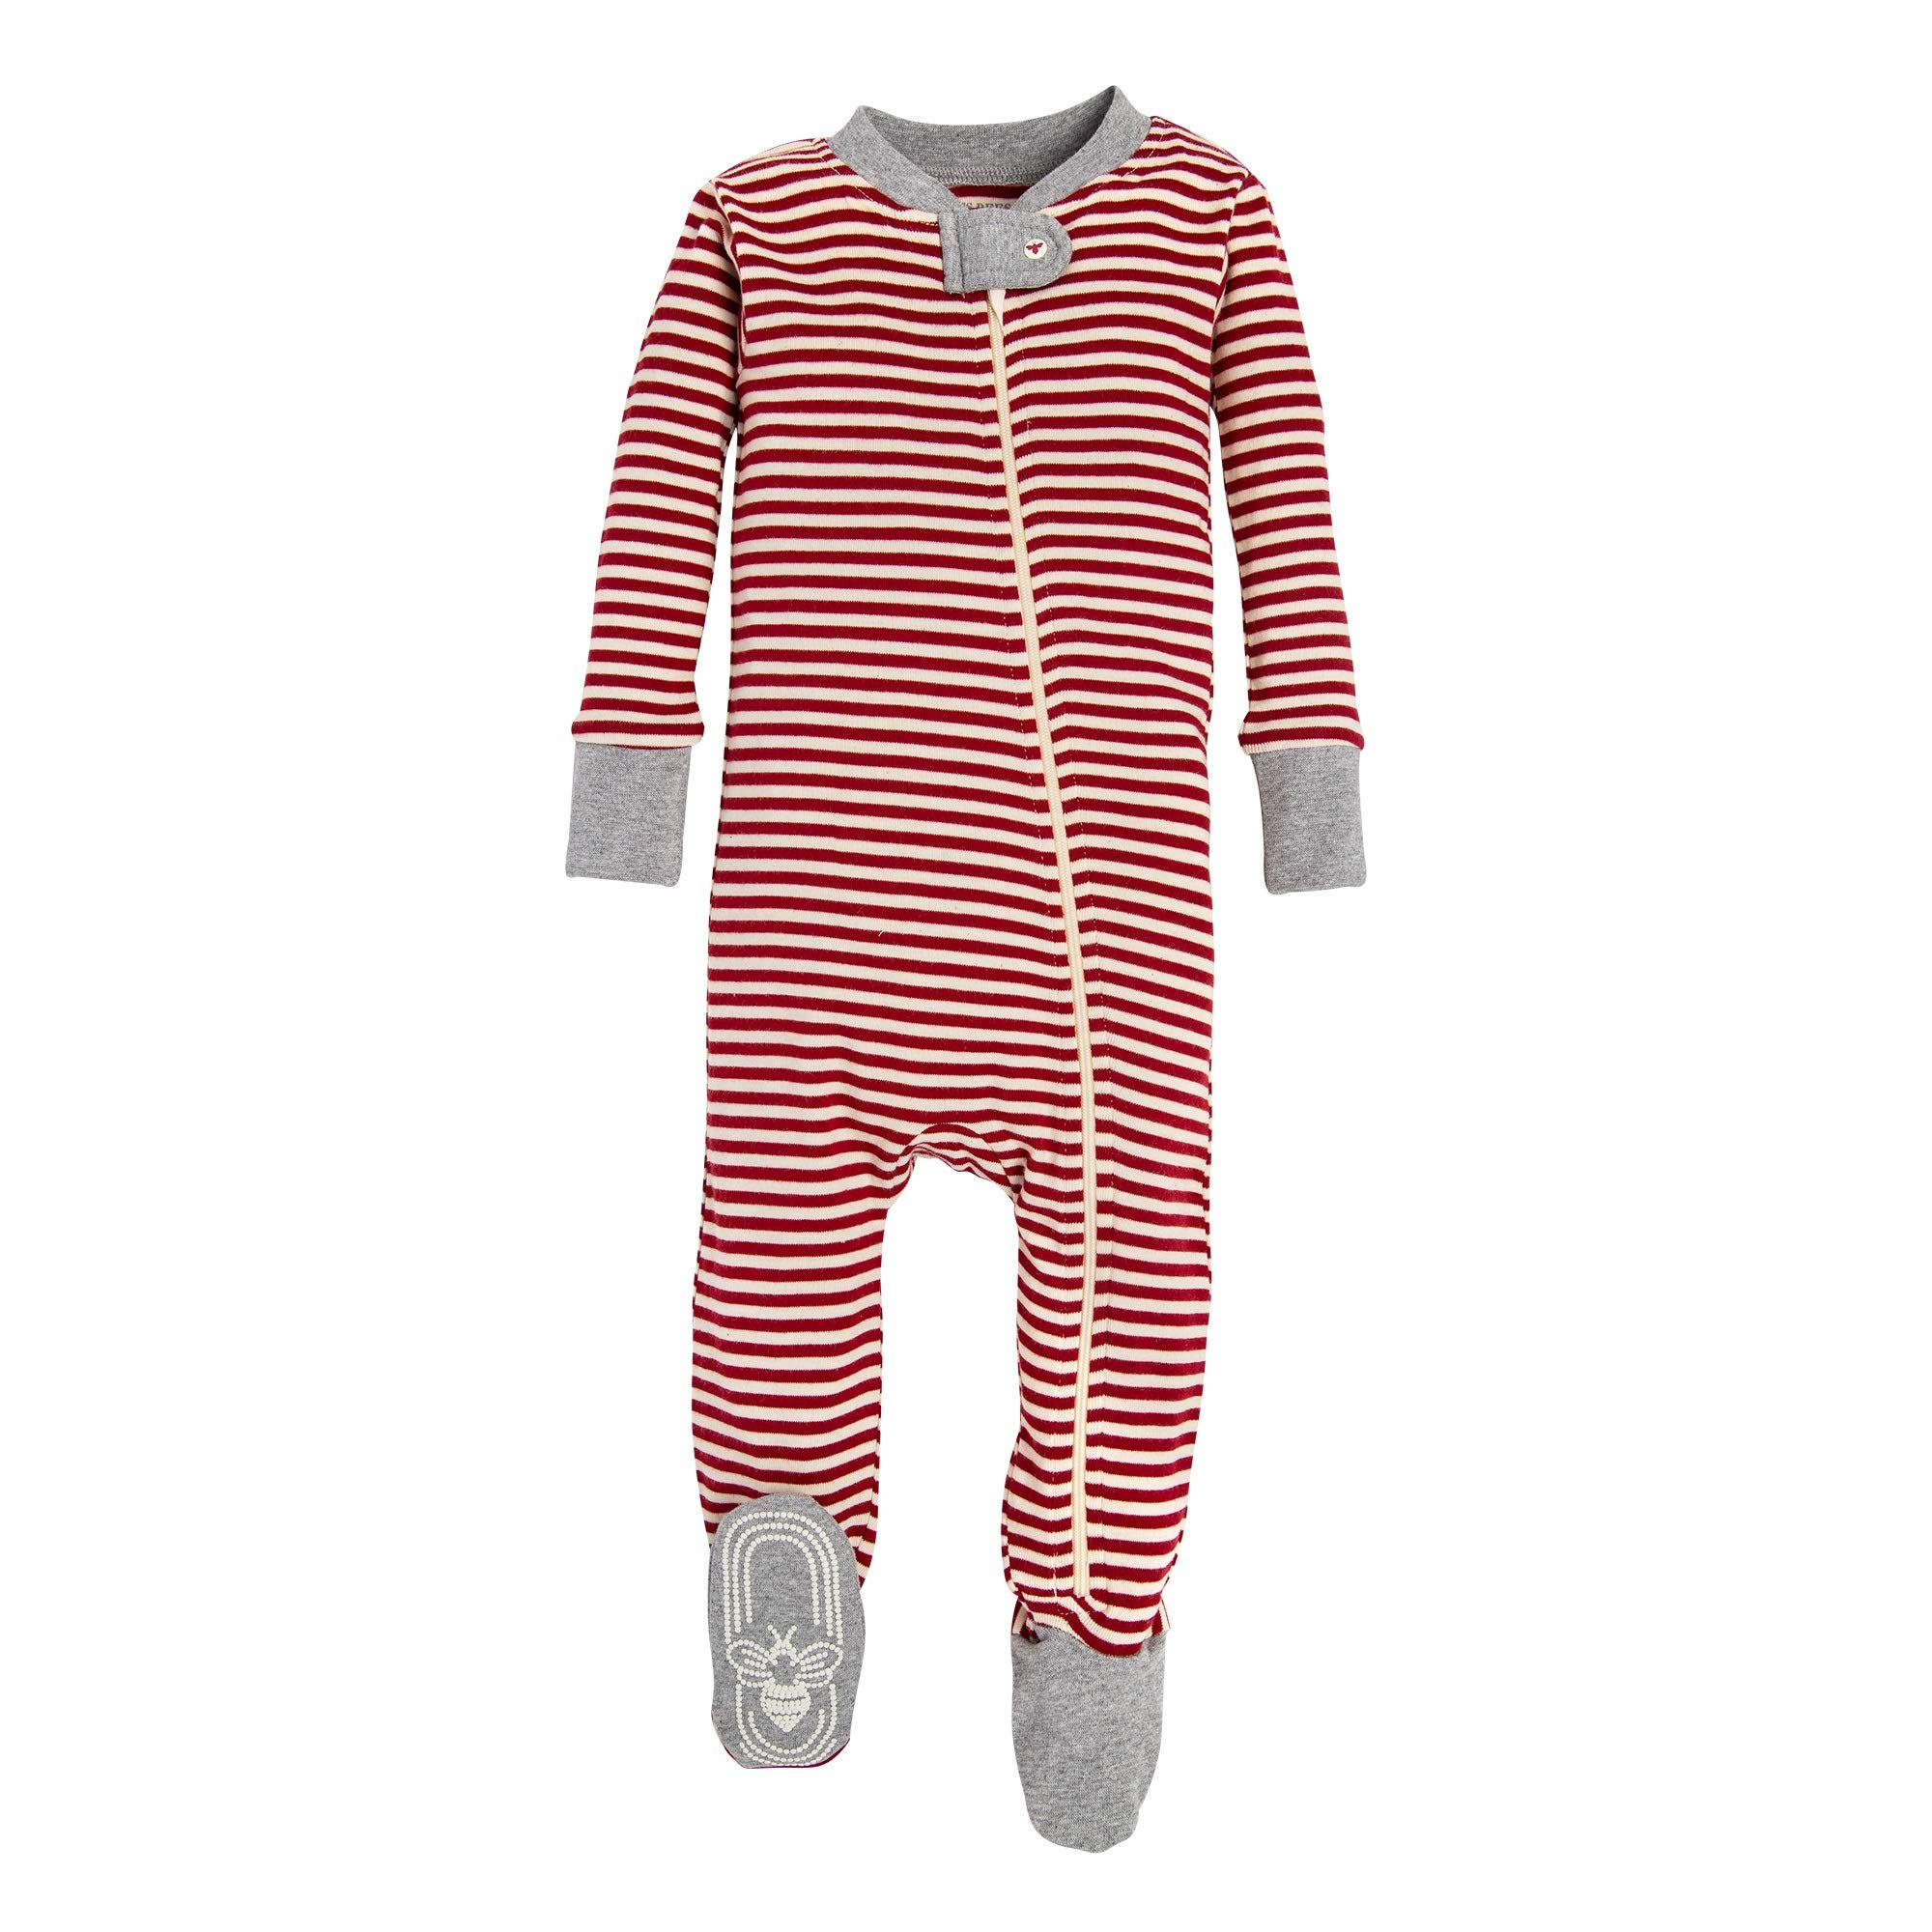 Burt's Bees Baby Baby 1-Pack Pajamas, Zip Front Non-Slip Footed Sleeper PJs, 100% Organic Cotton, Red/White Stripes 12 Months